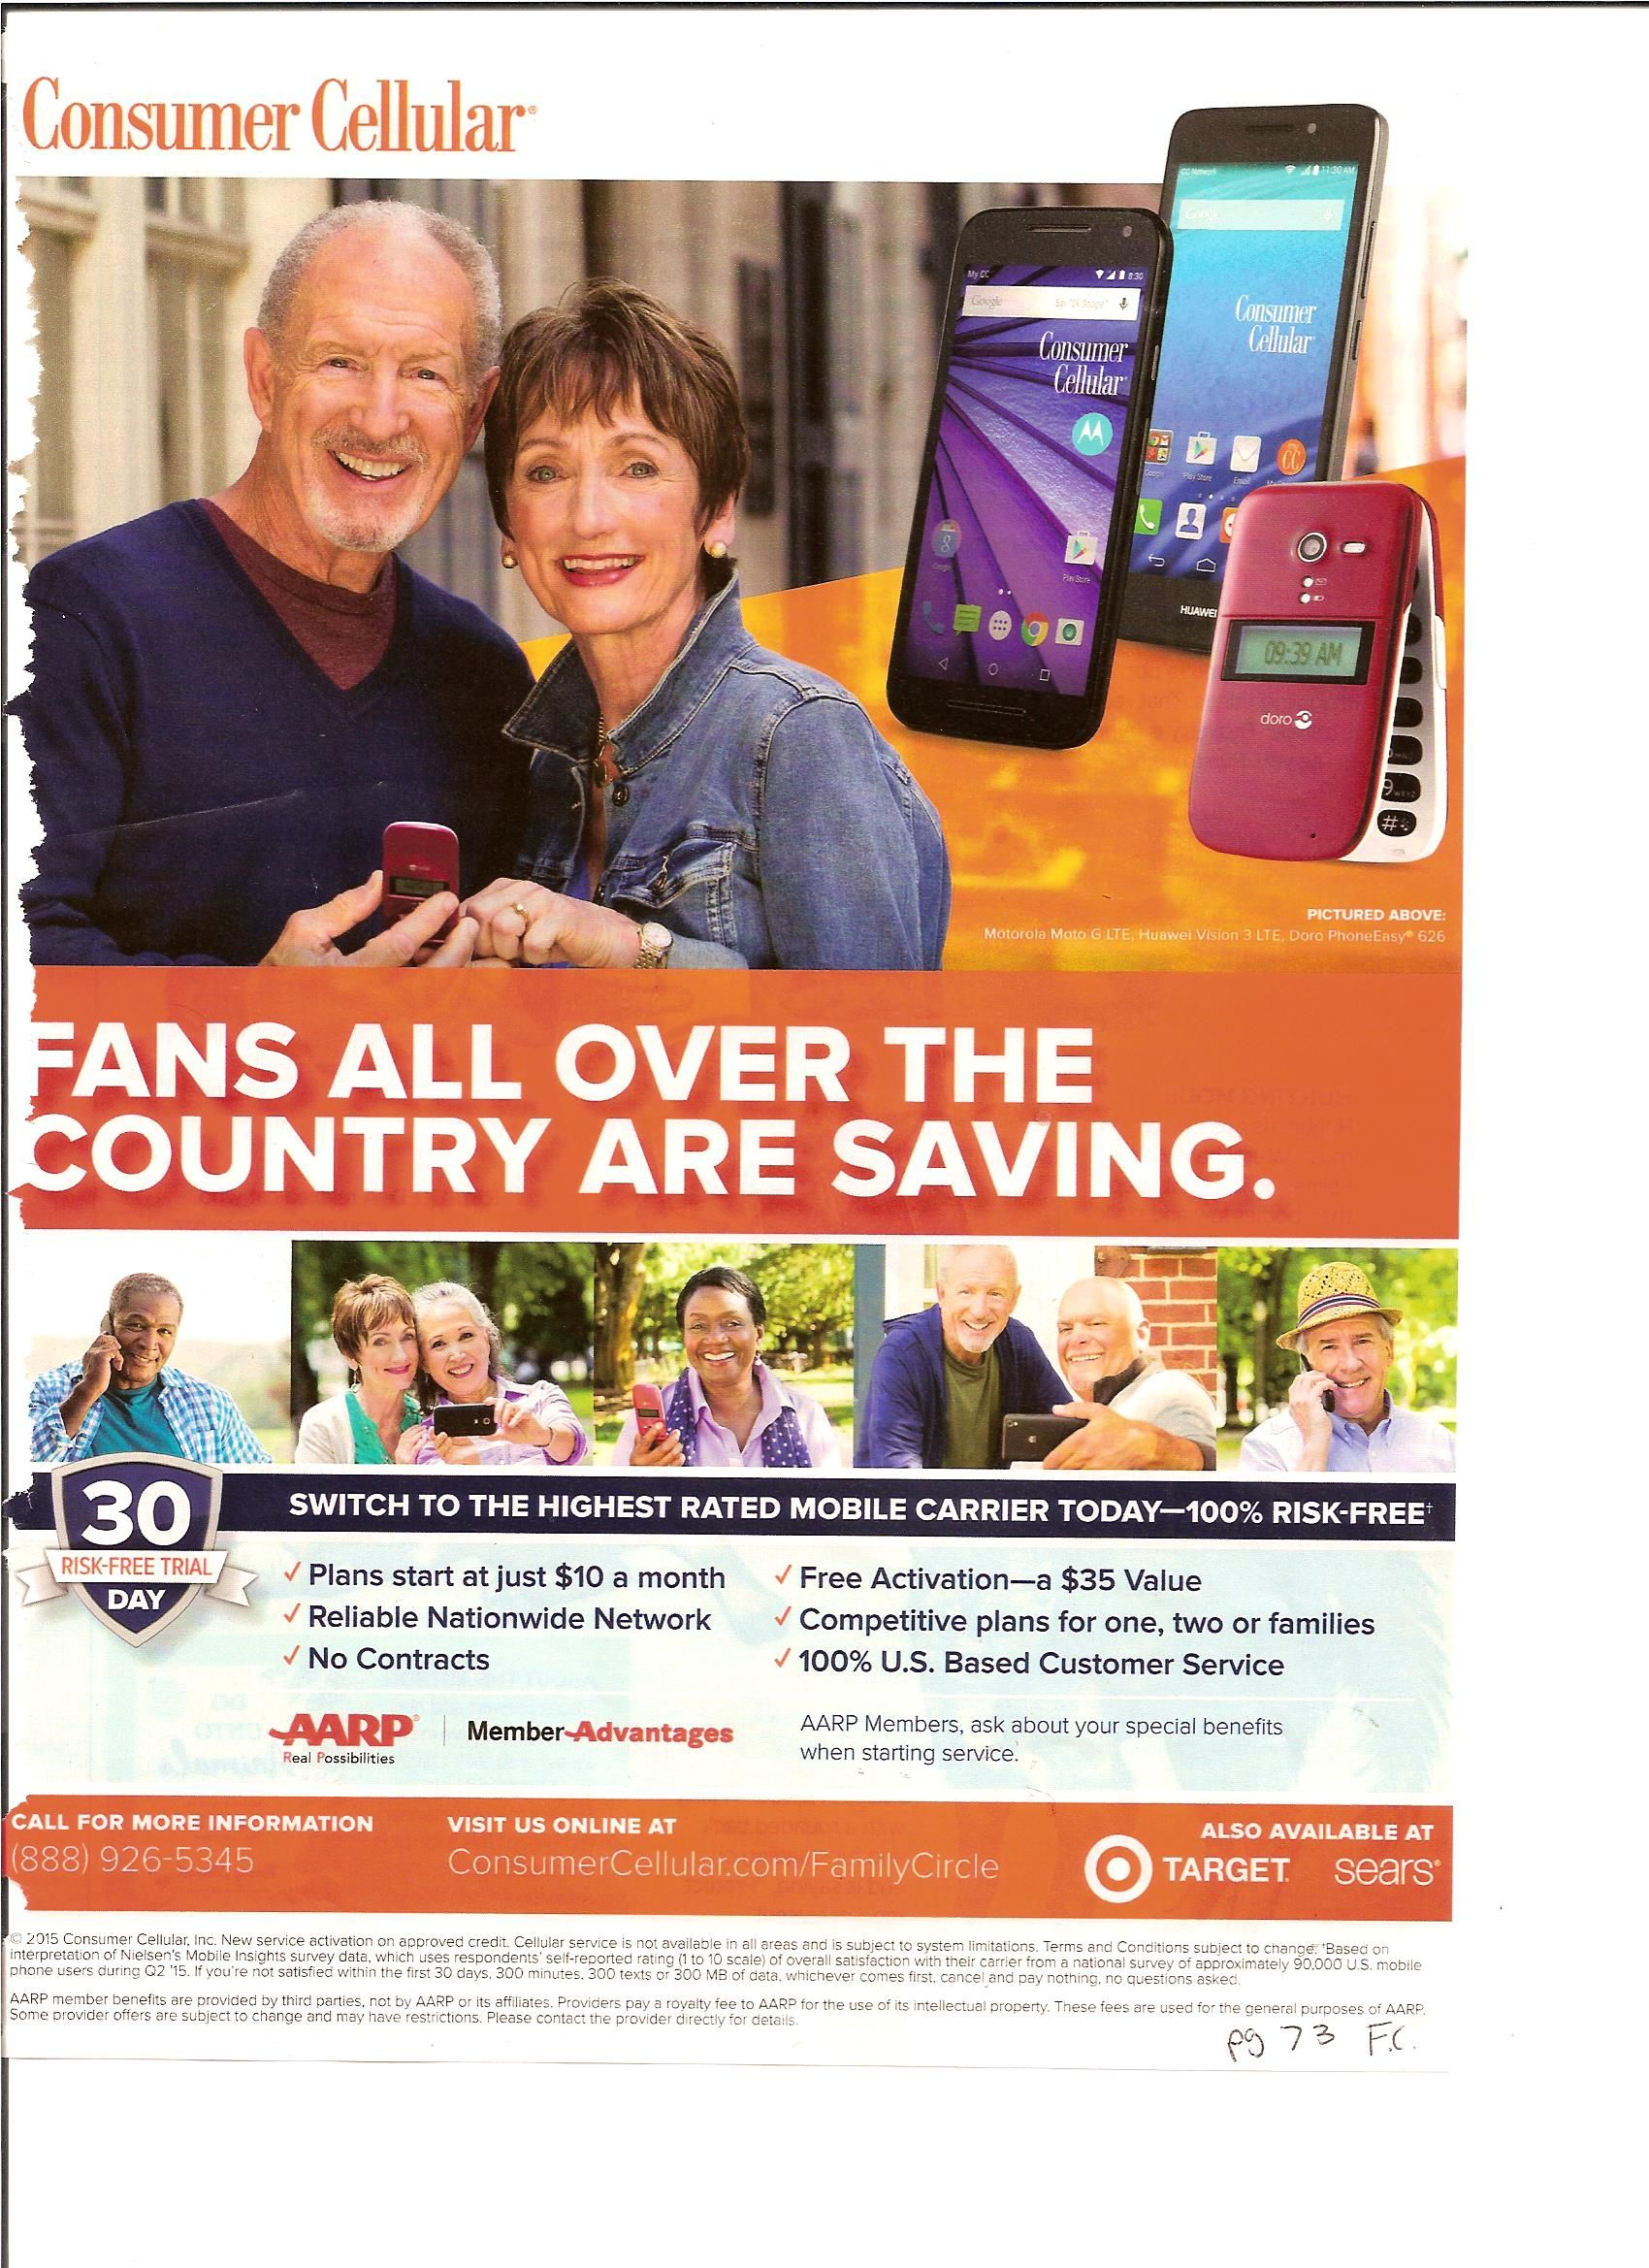 Ad 7. This ad is for Consumer Cellular, for saving money